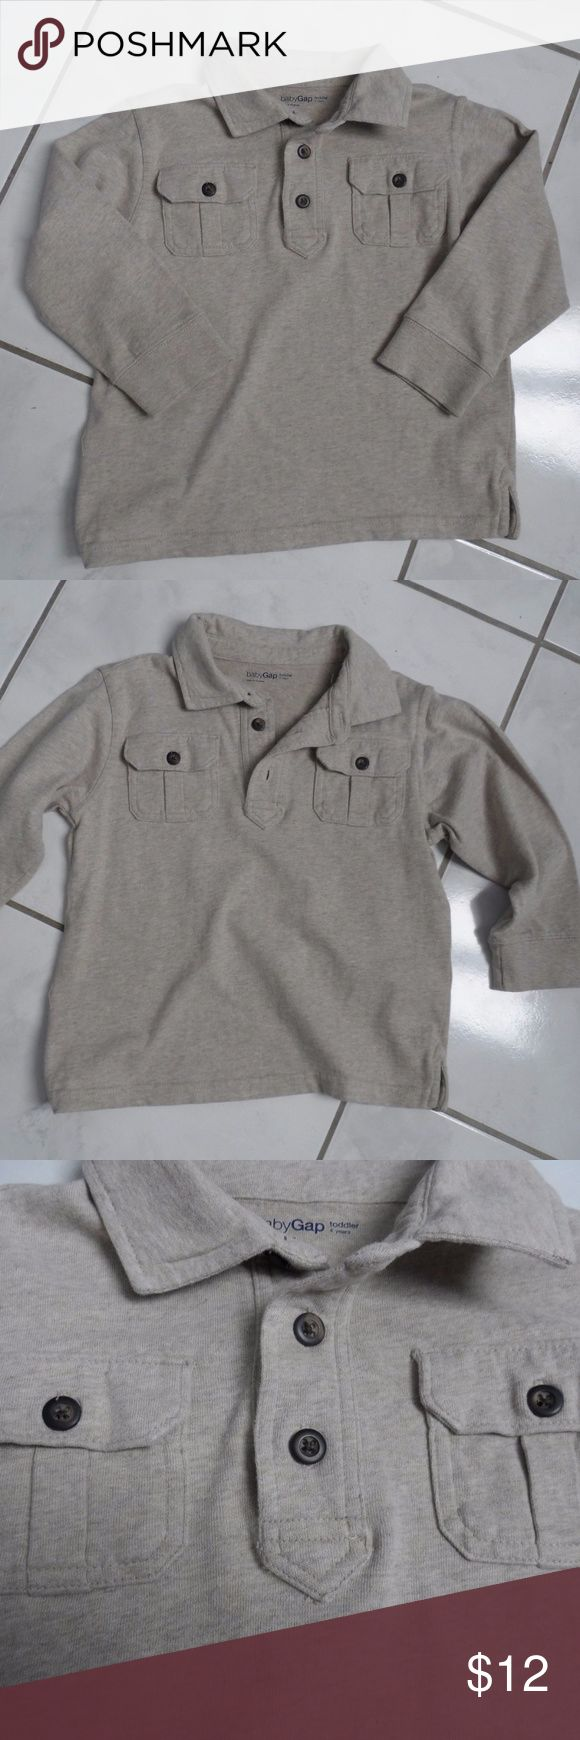 Baby Gap Polo Oatmeal Long Sleeve Shirt Boys 4T Great long sleeve polo shirt from baby Gap in size 4 years or 4T. Heathered tan beige oatmeal color. Three button closure at neck. Two working button pockets on front. Super soft, 100% Cotton. Always washed on delicate and hung to air dry. GAP Shirts & Tops Polos